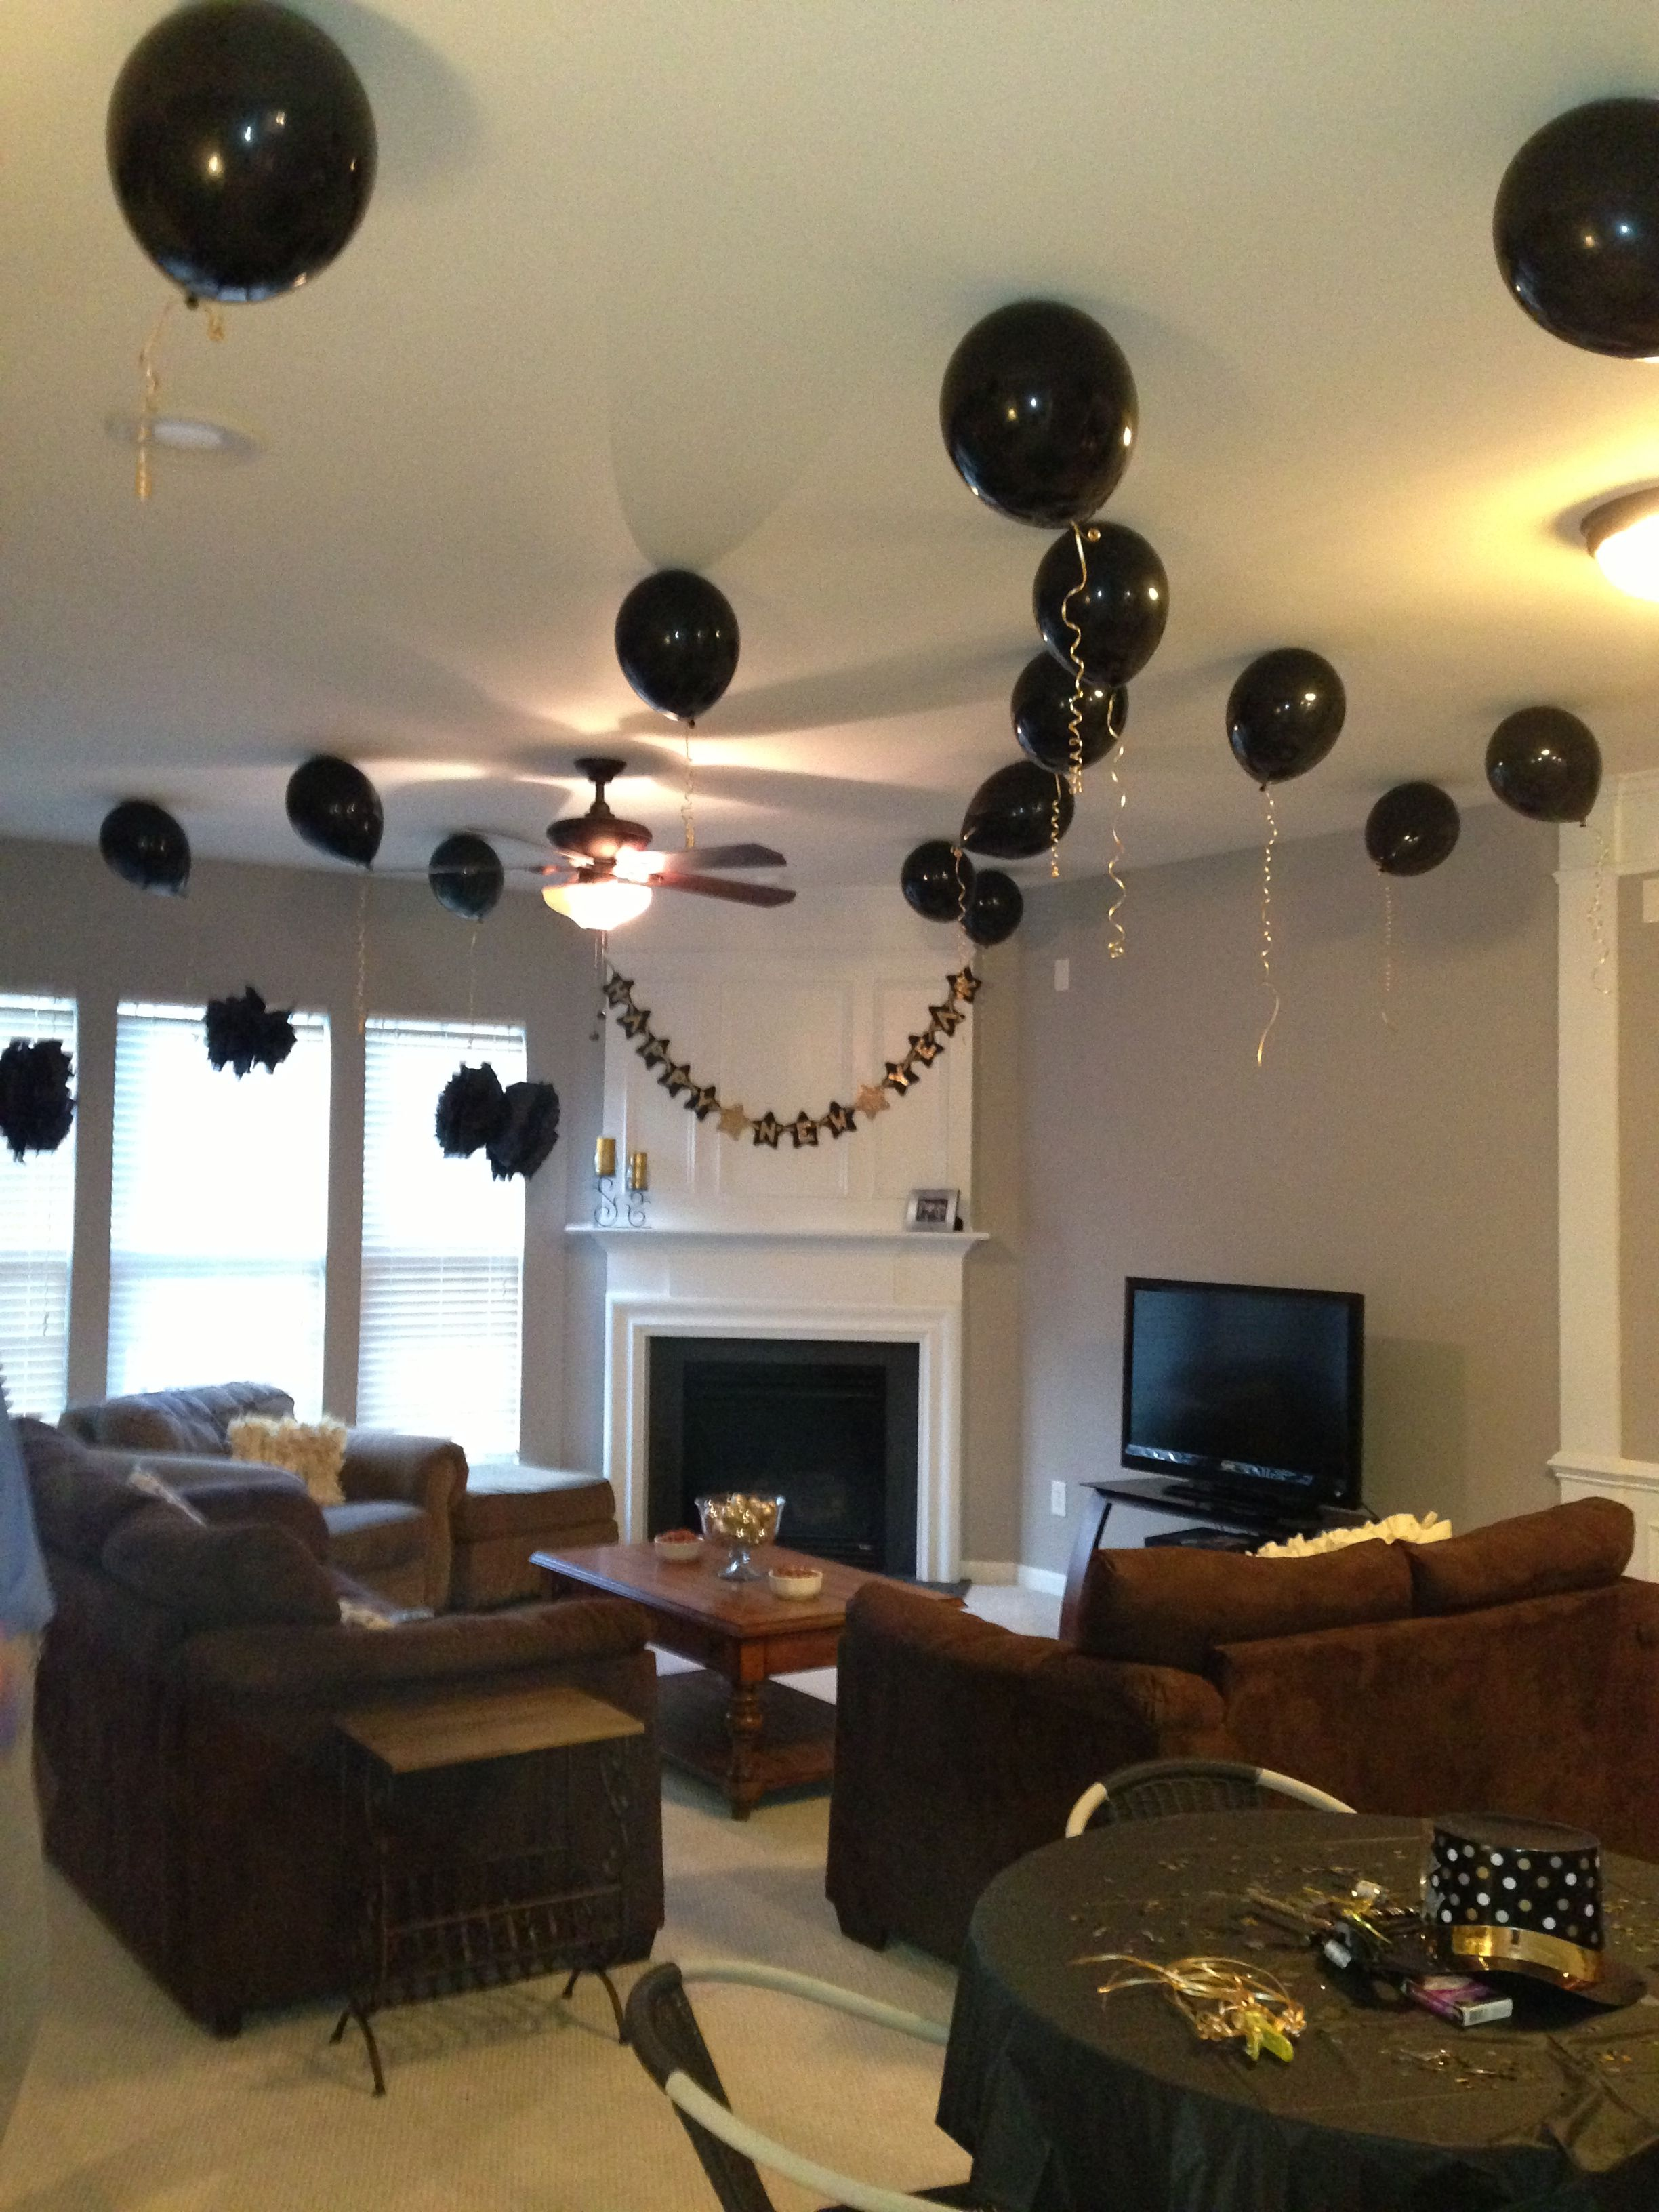 House Party Decorations Ballons And